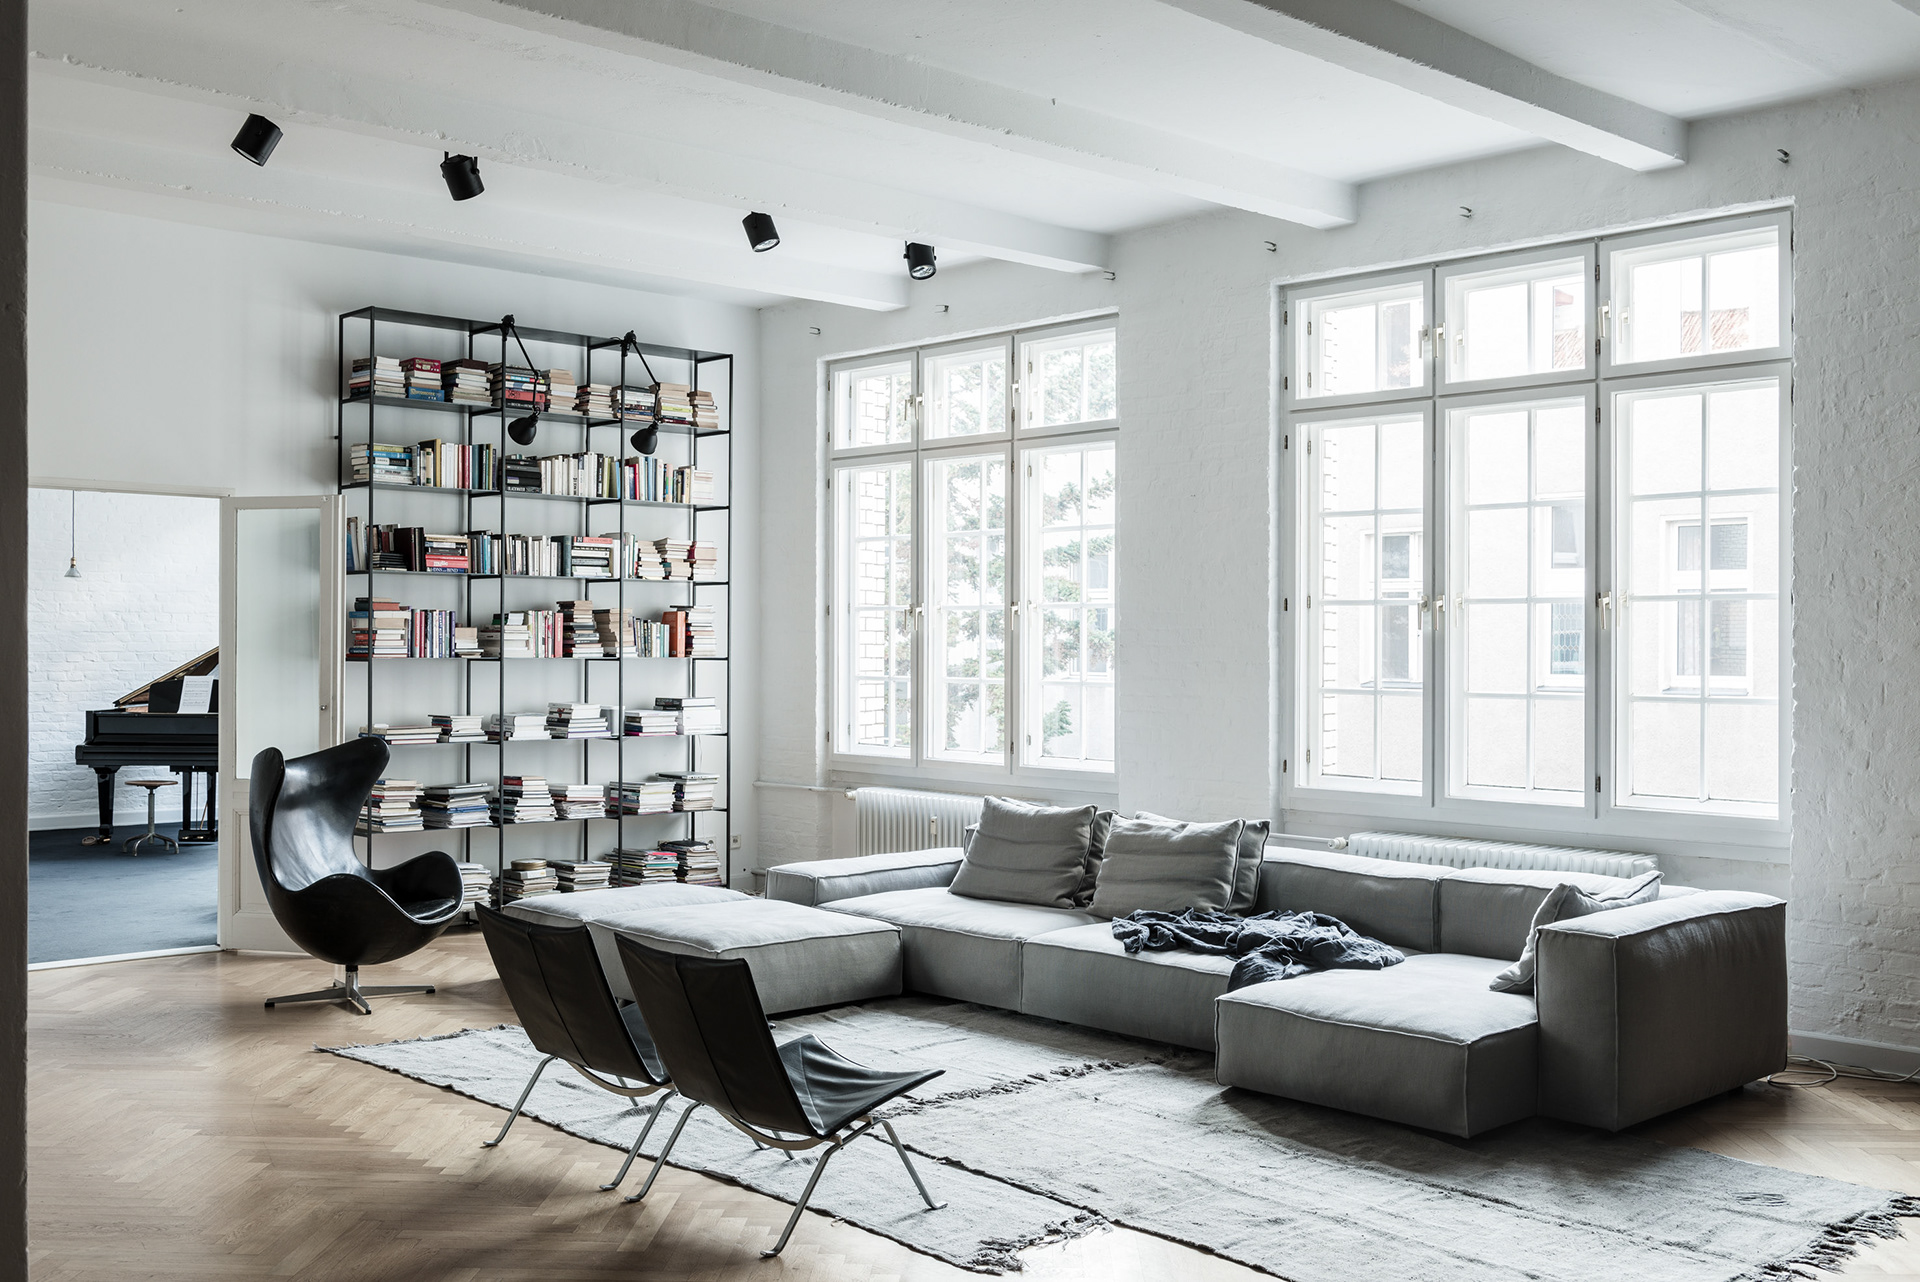 Annabell Kutucu - Loft Apartment & Studio Berlin